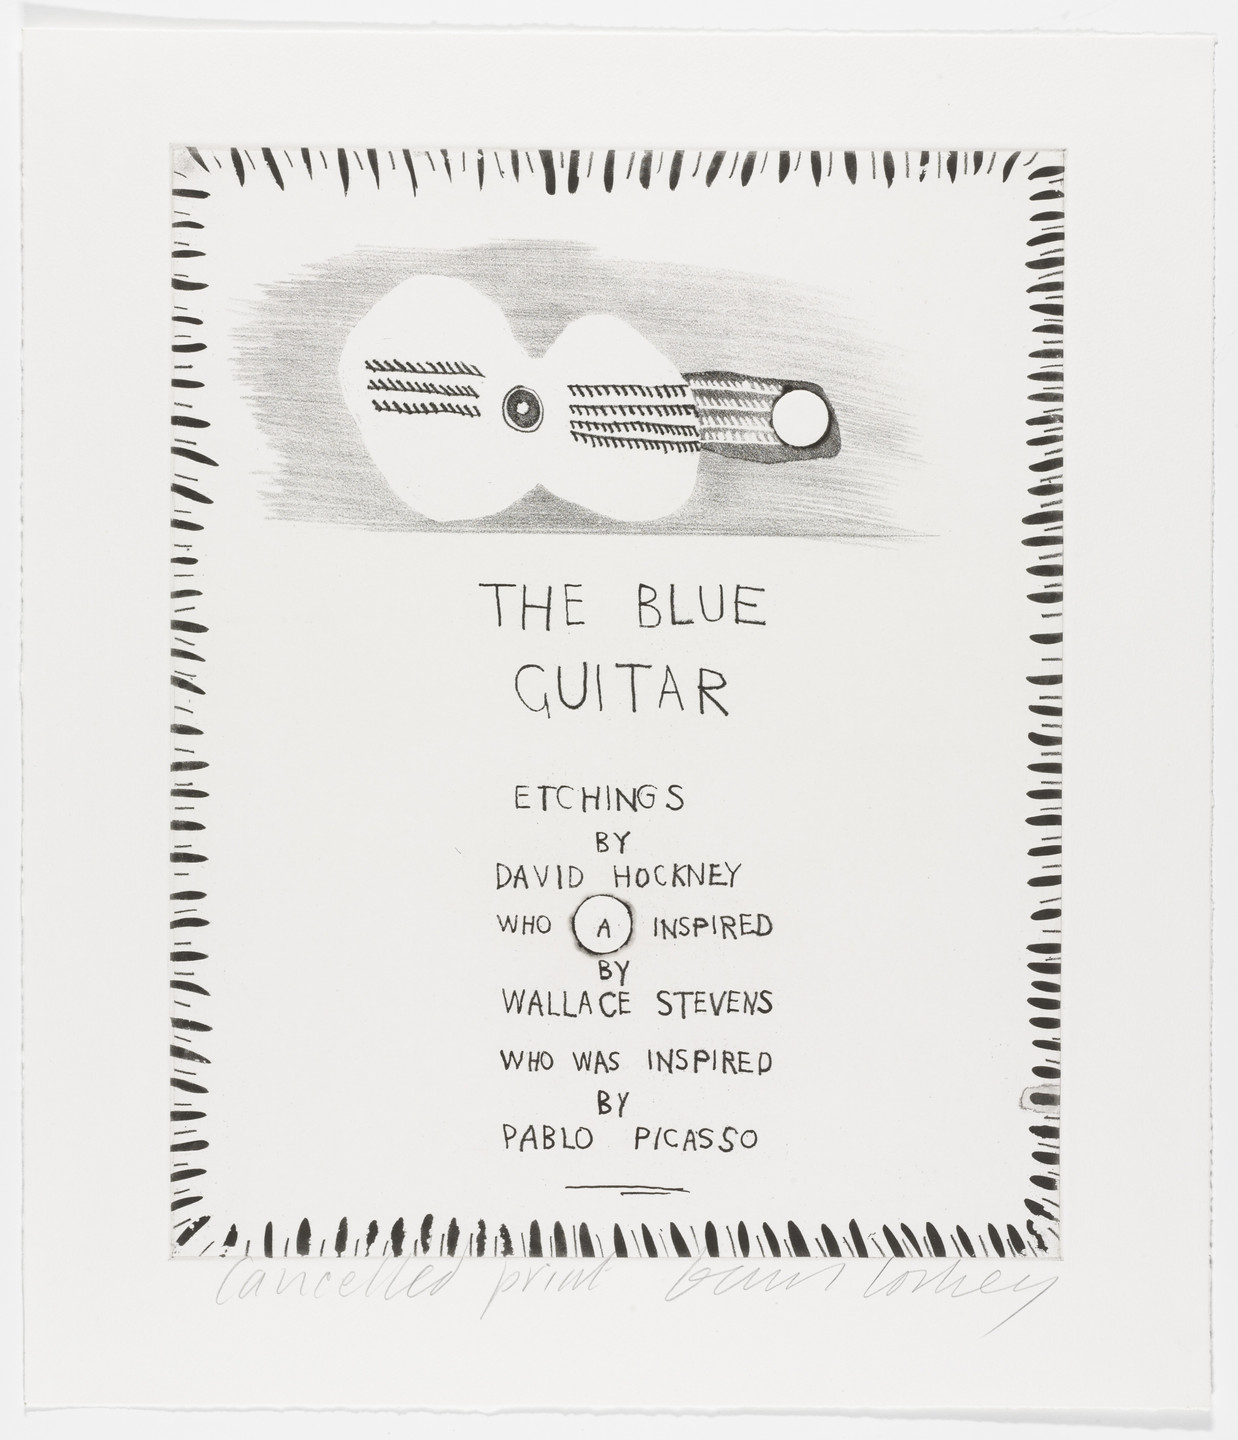 David Hockney. Cancellation proof for The Blue Guitar from The Blue Guitar. 1977